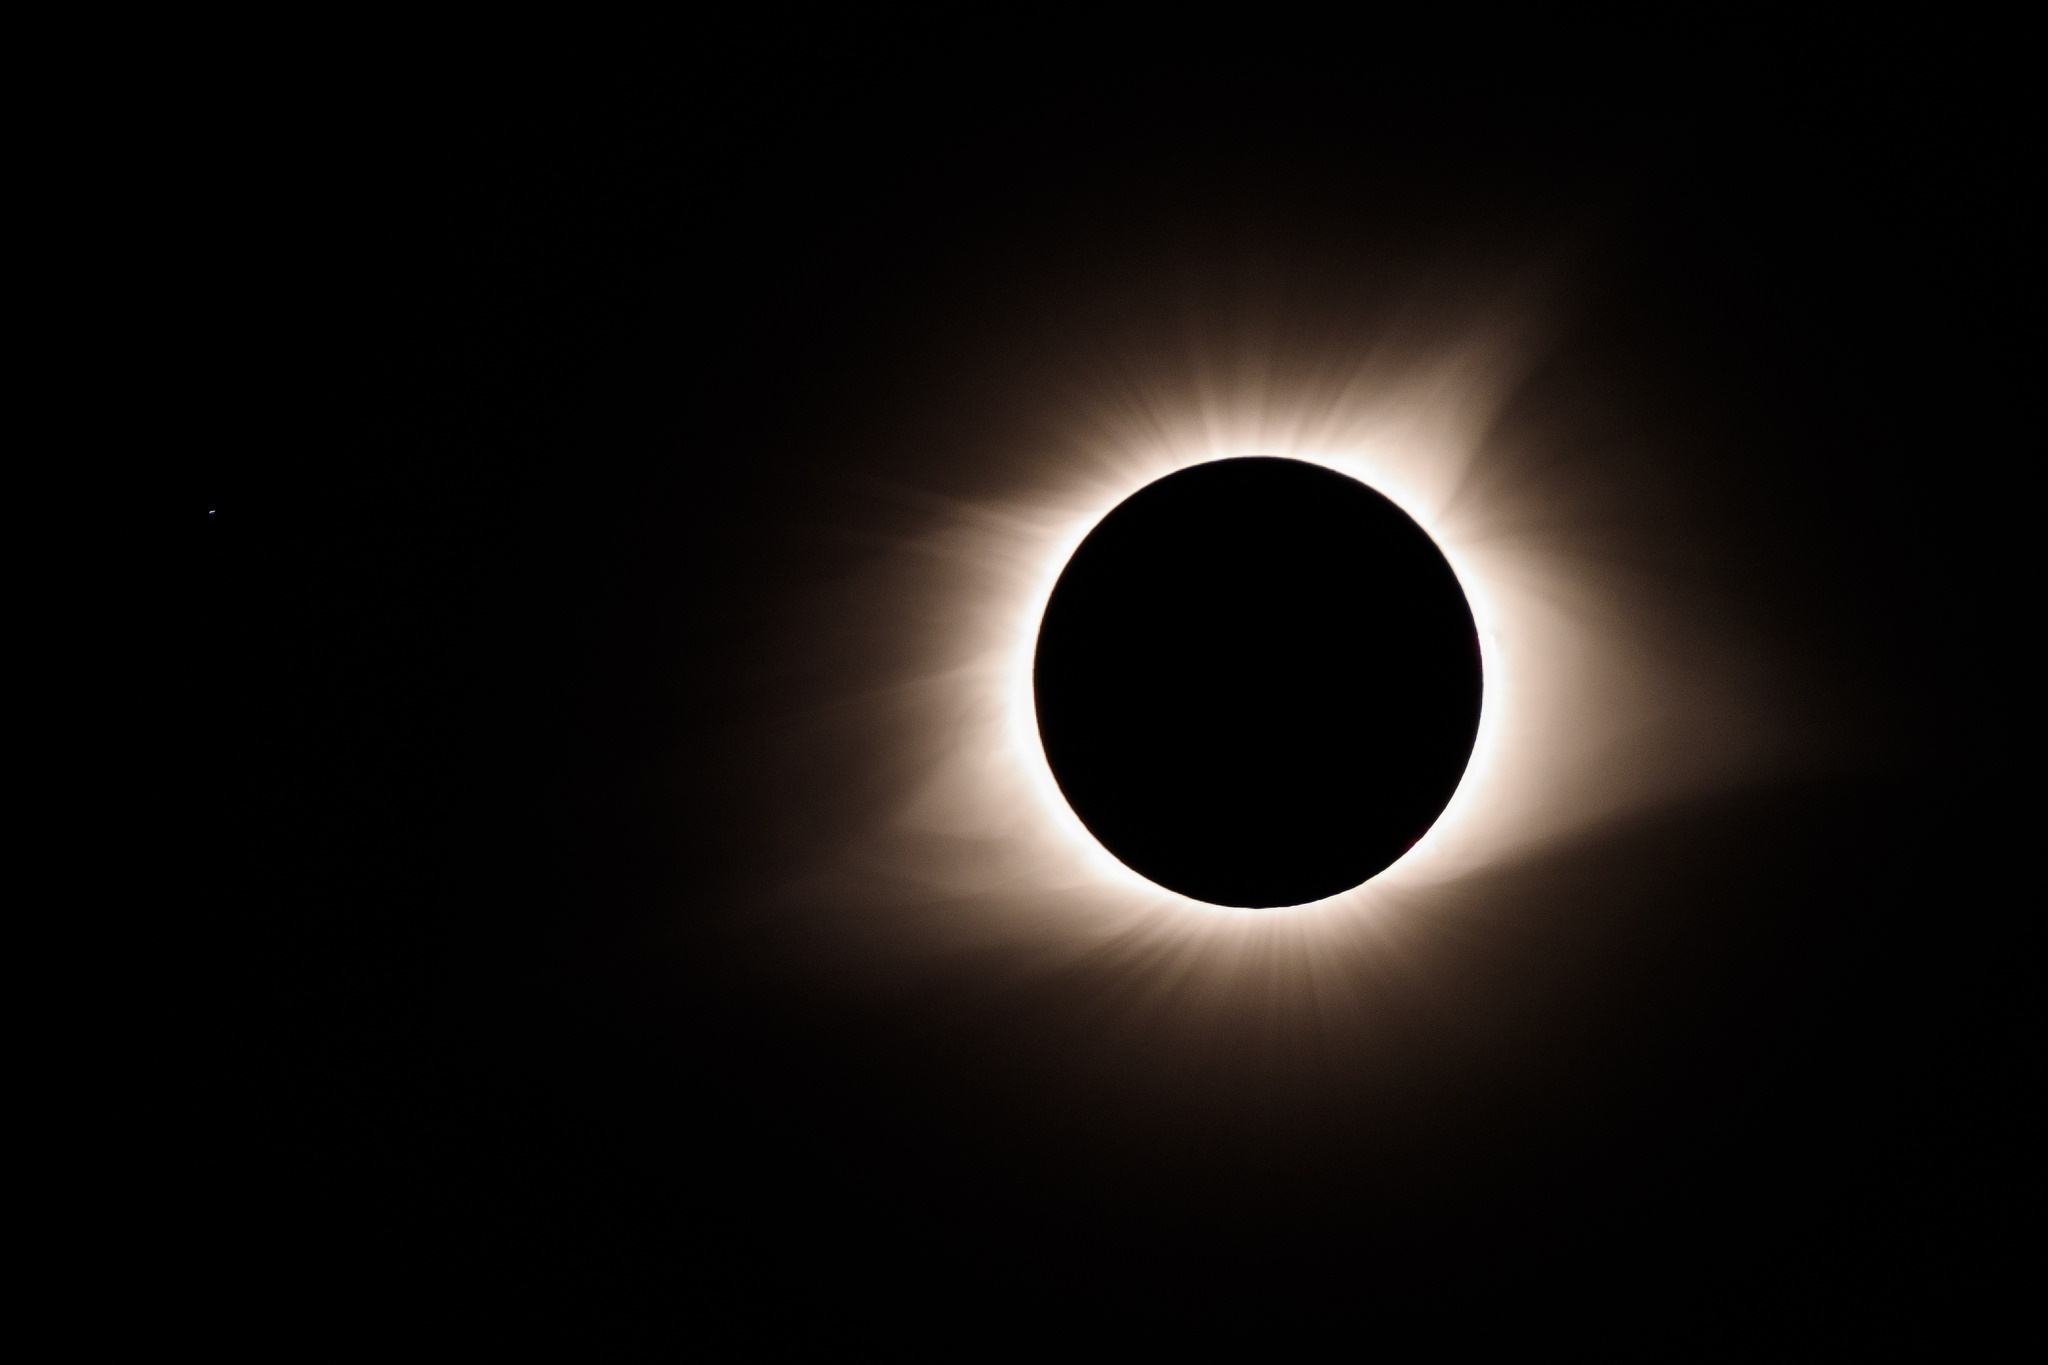 The eclipse at totality.